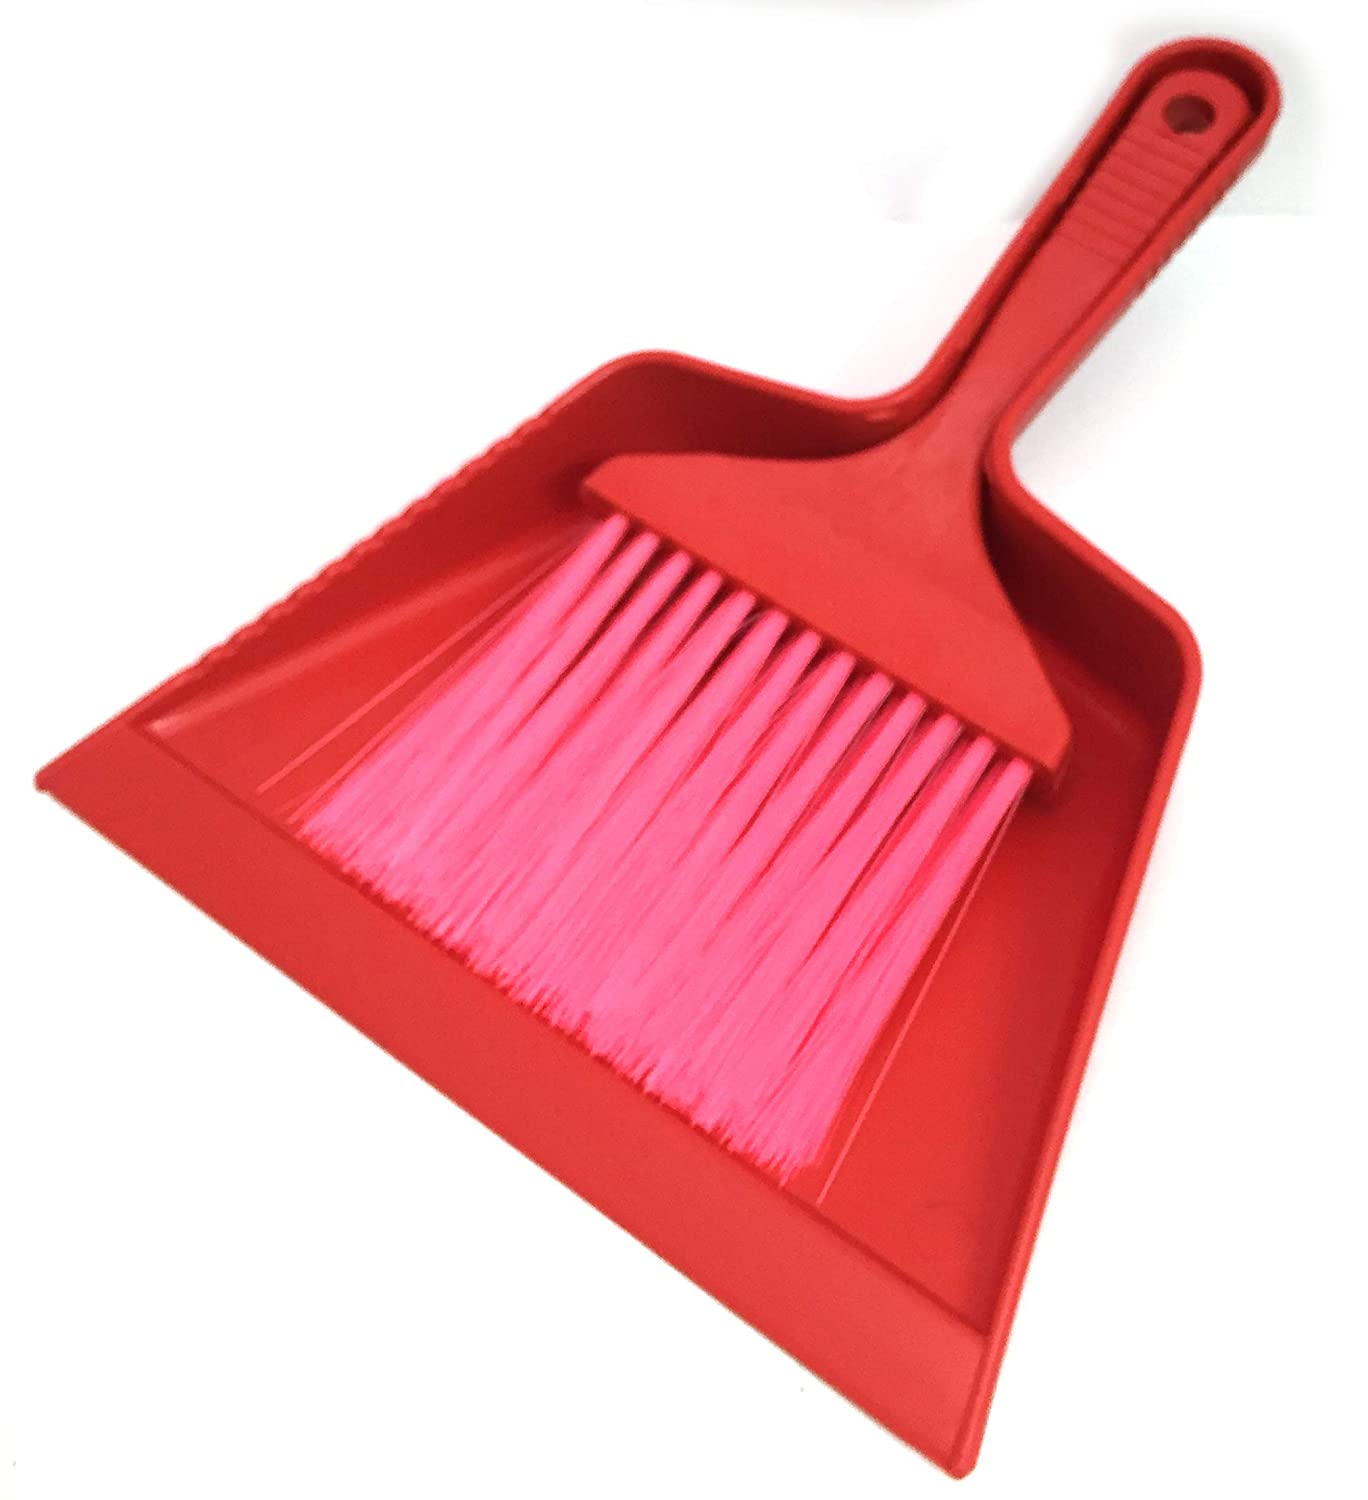 Multipurpose Mini Dustpan and Brush Set - Tiny Sweeper Household Handbroom Pack - Indoor/Outdoor Dust and Dirt Cleaner - One Size, Comes in Assorted Colors